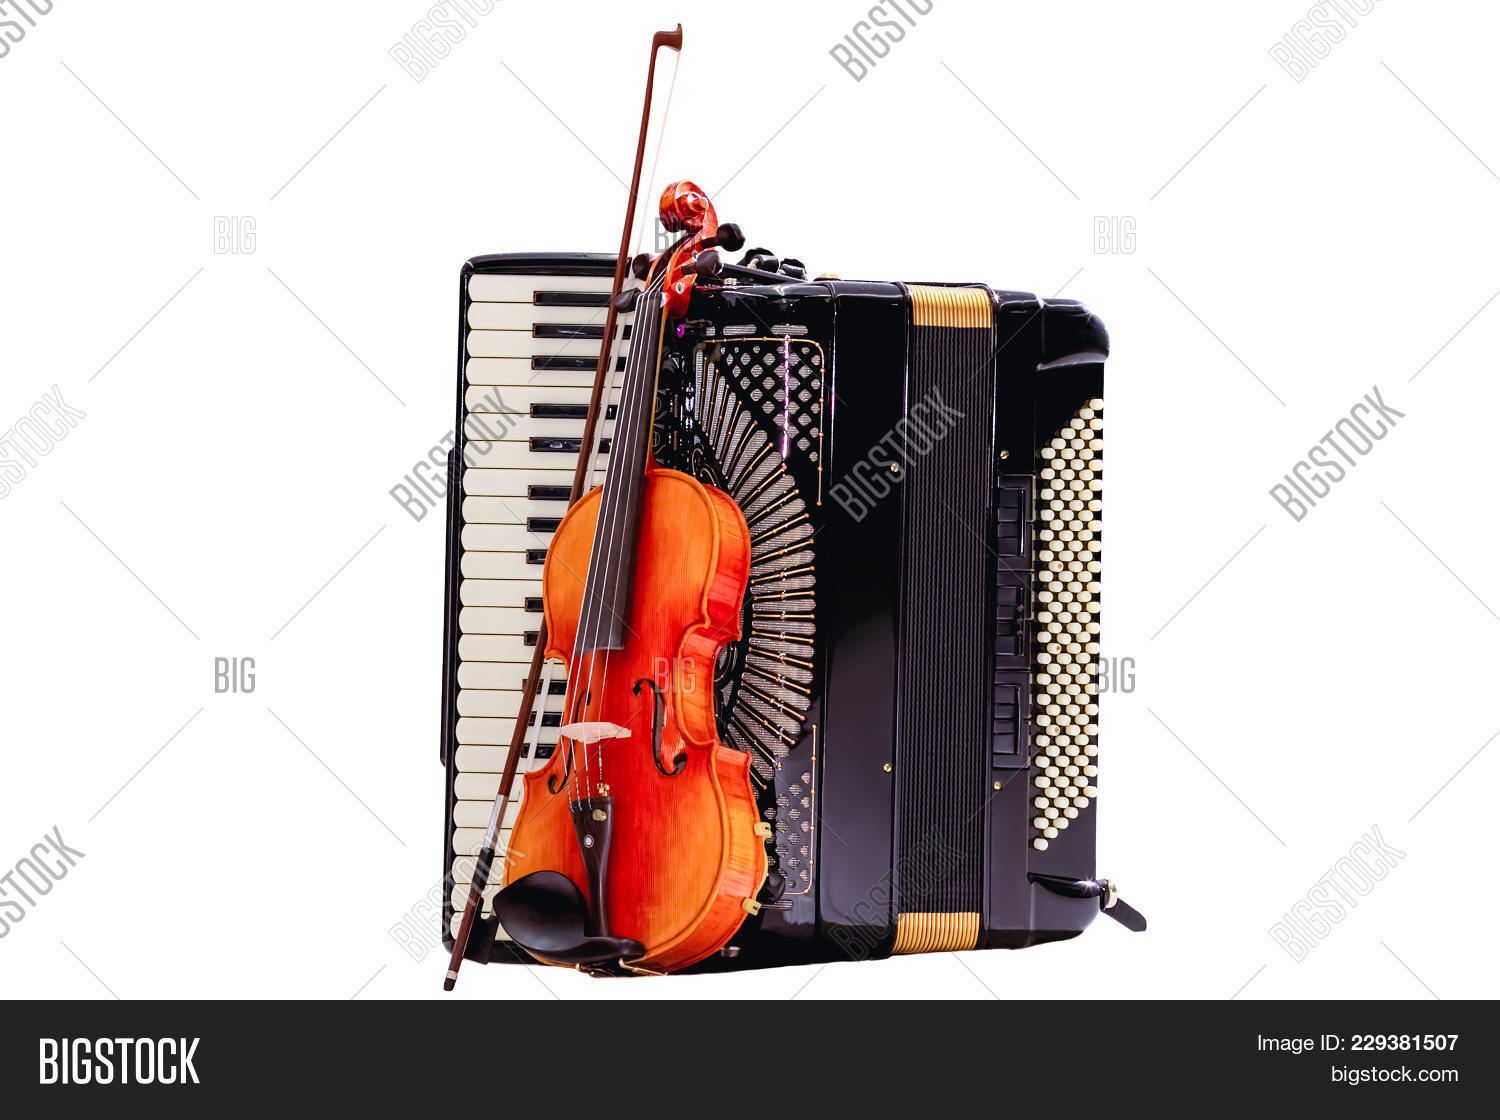 Violin Stuck To The Accordion With Art Concept Of Musical Instruments